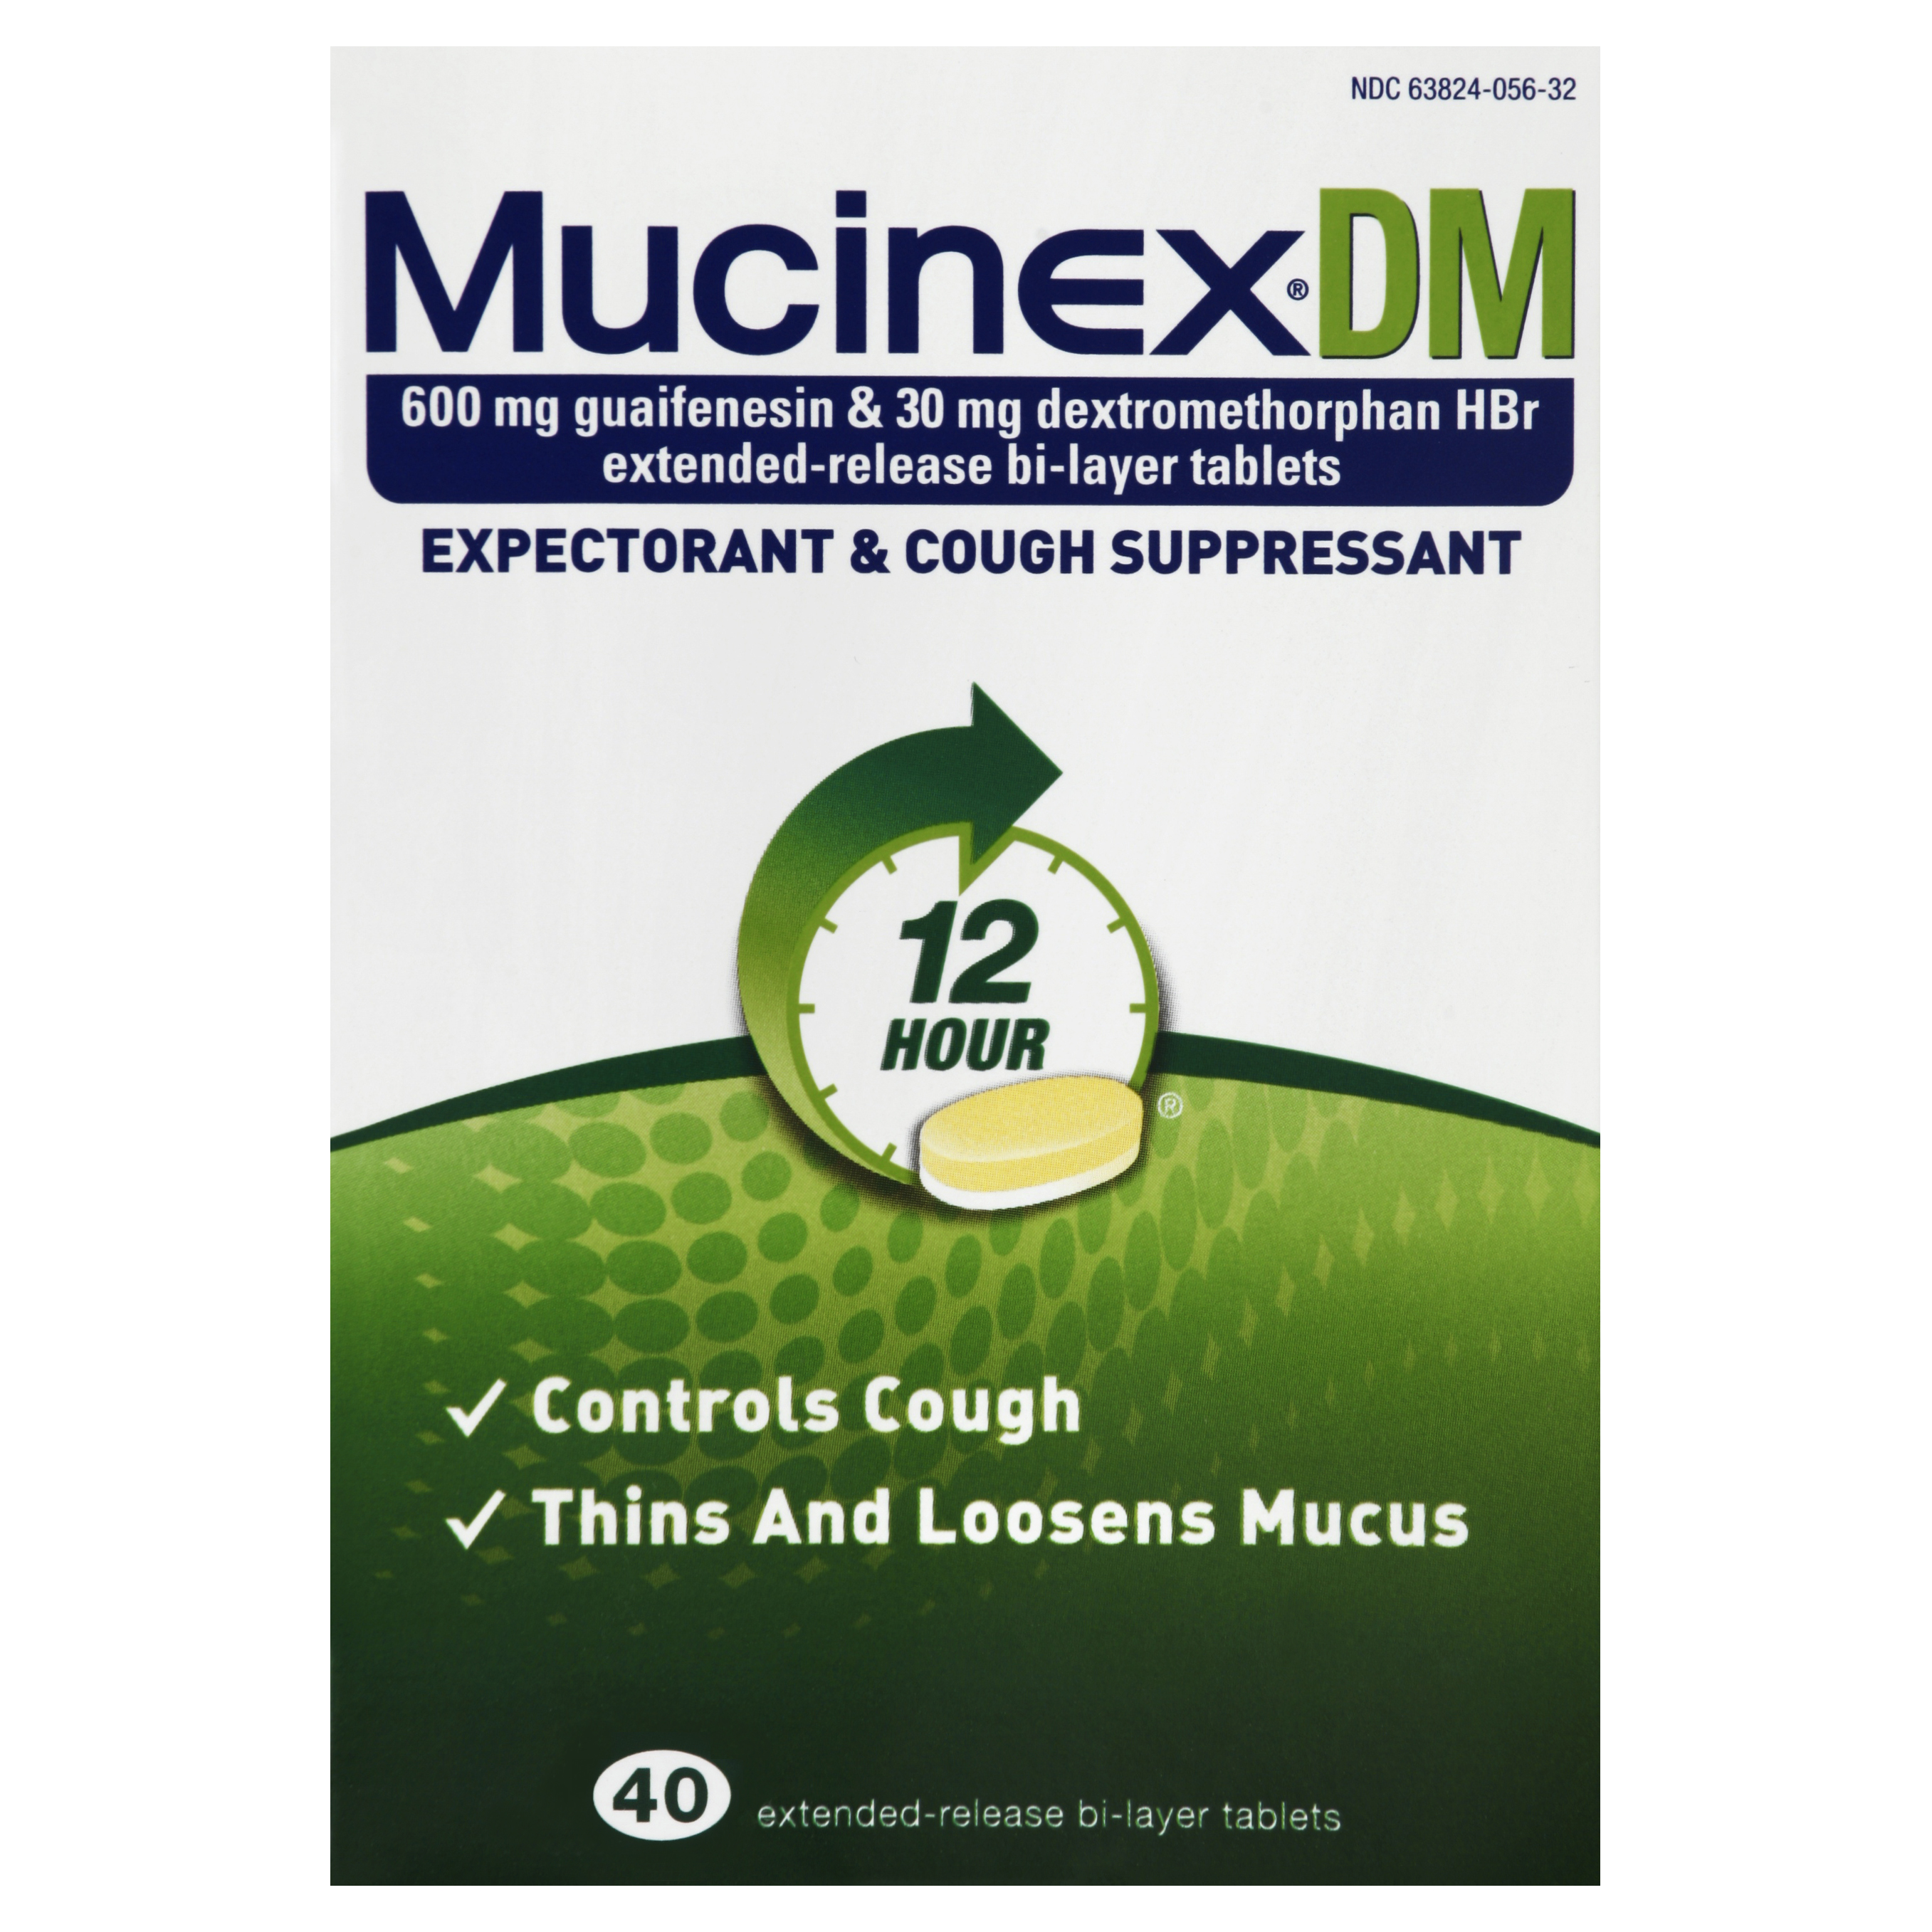 Mucinex DM 12-Hour Expectorant and Cough Suppressant Tablets, 40 Count